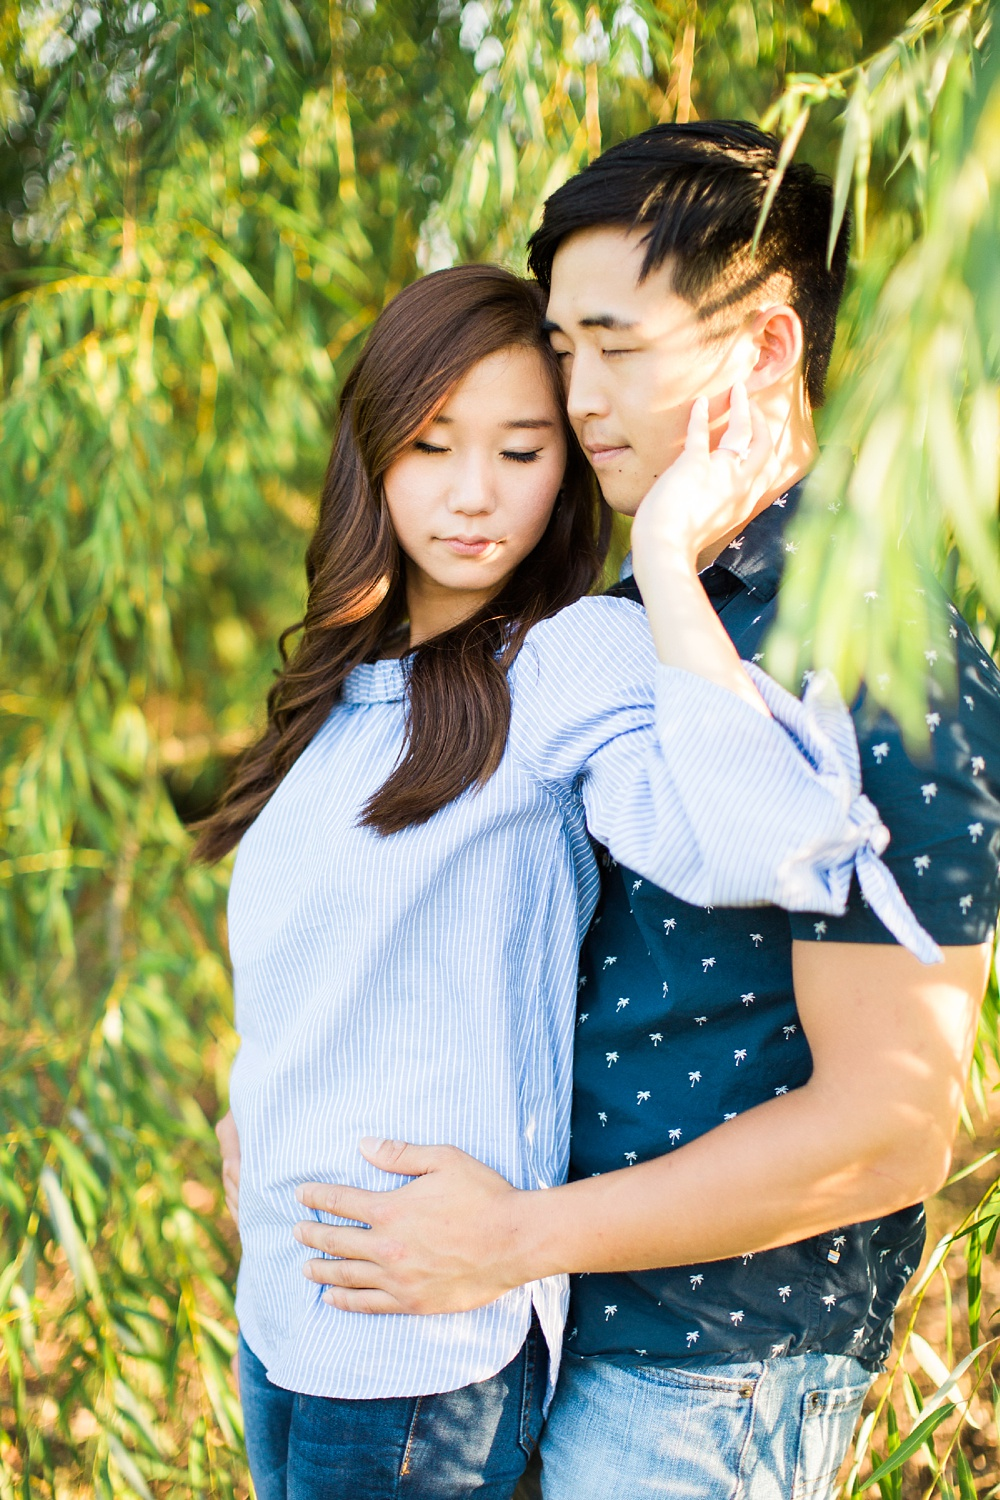 couple embraces under willow branches in the golden evening sun